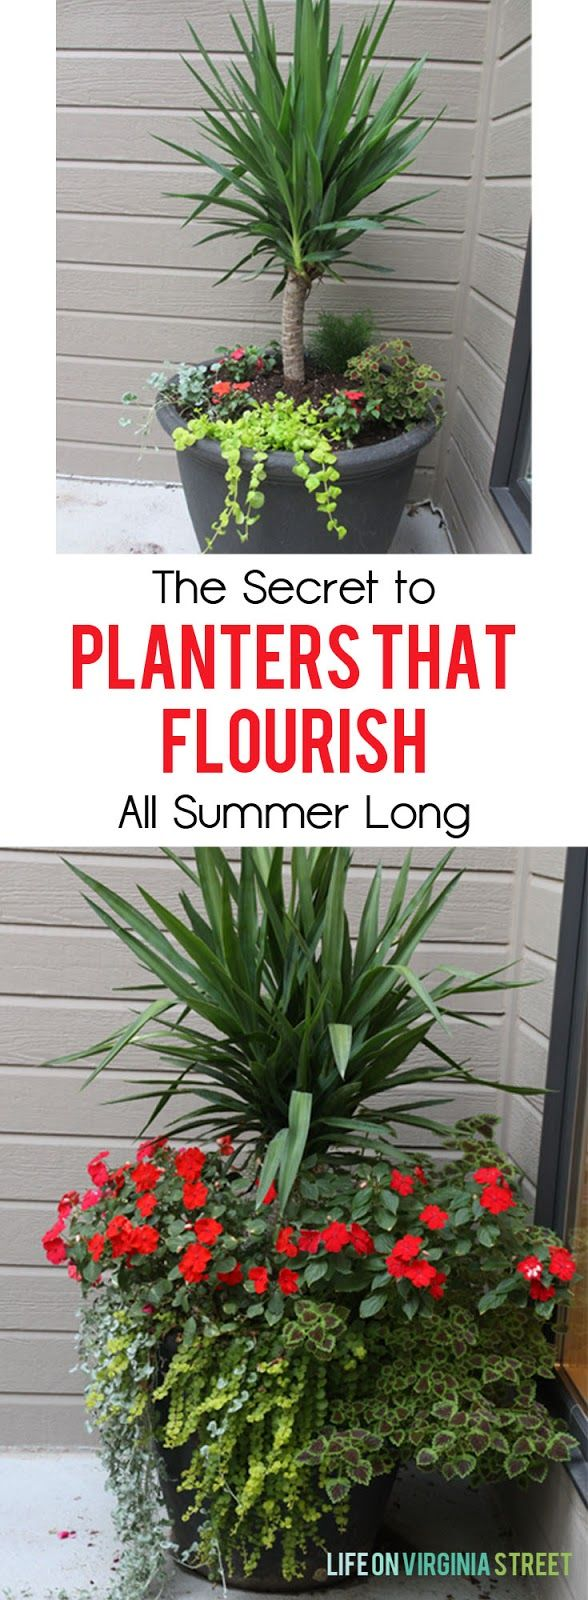 The secret ingredient to planters that flourish all season long. Definitely need to give this a try.